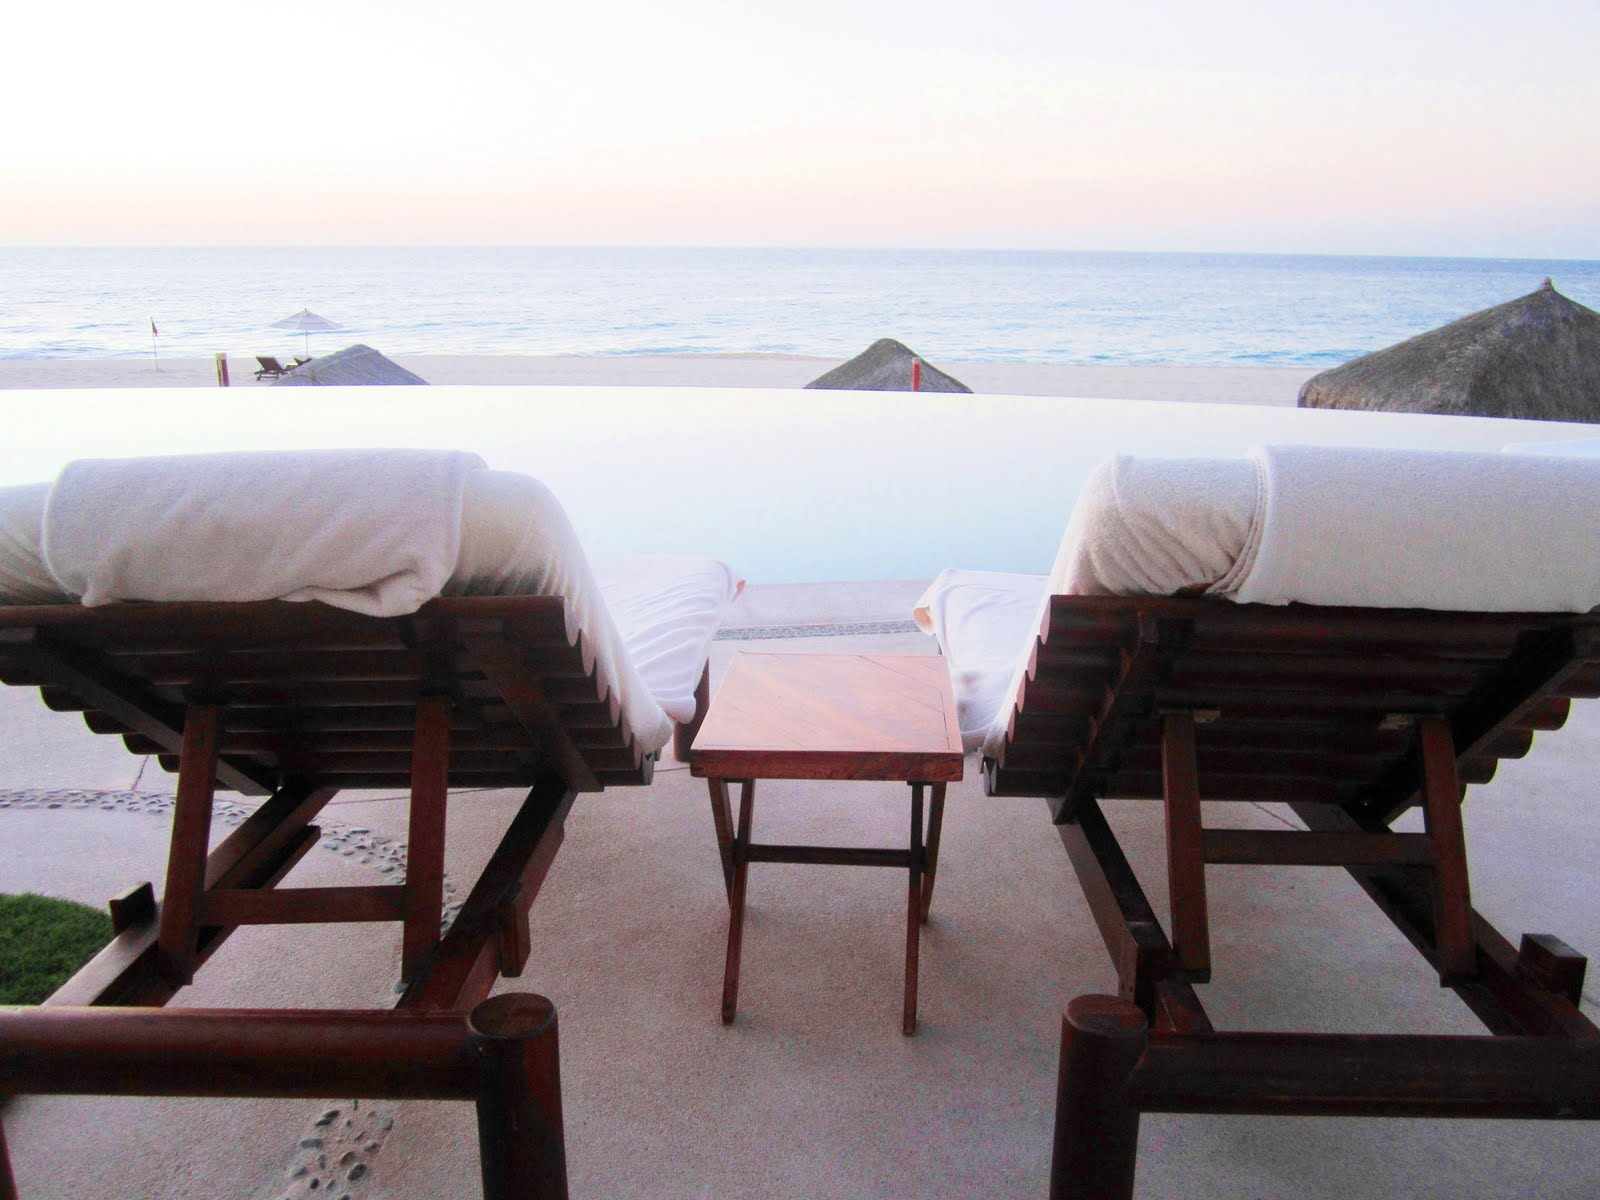 COCOCOZY: RELAX - MORNING IN MEXICO! - Small Relax Chairs